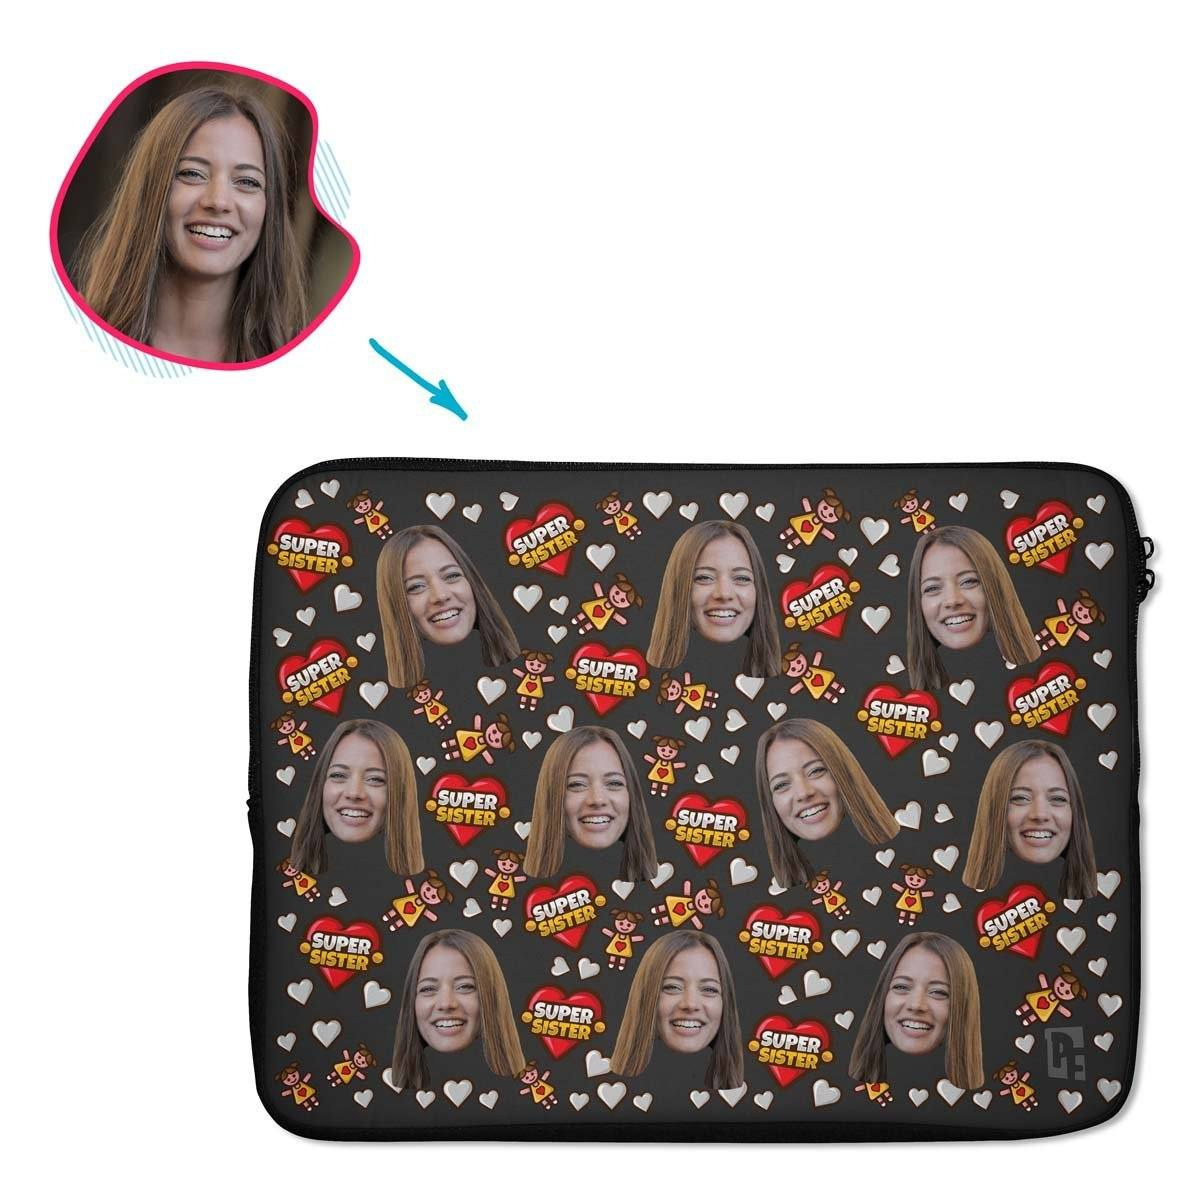 Super Sister Personalized Laptop Sleeve